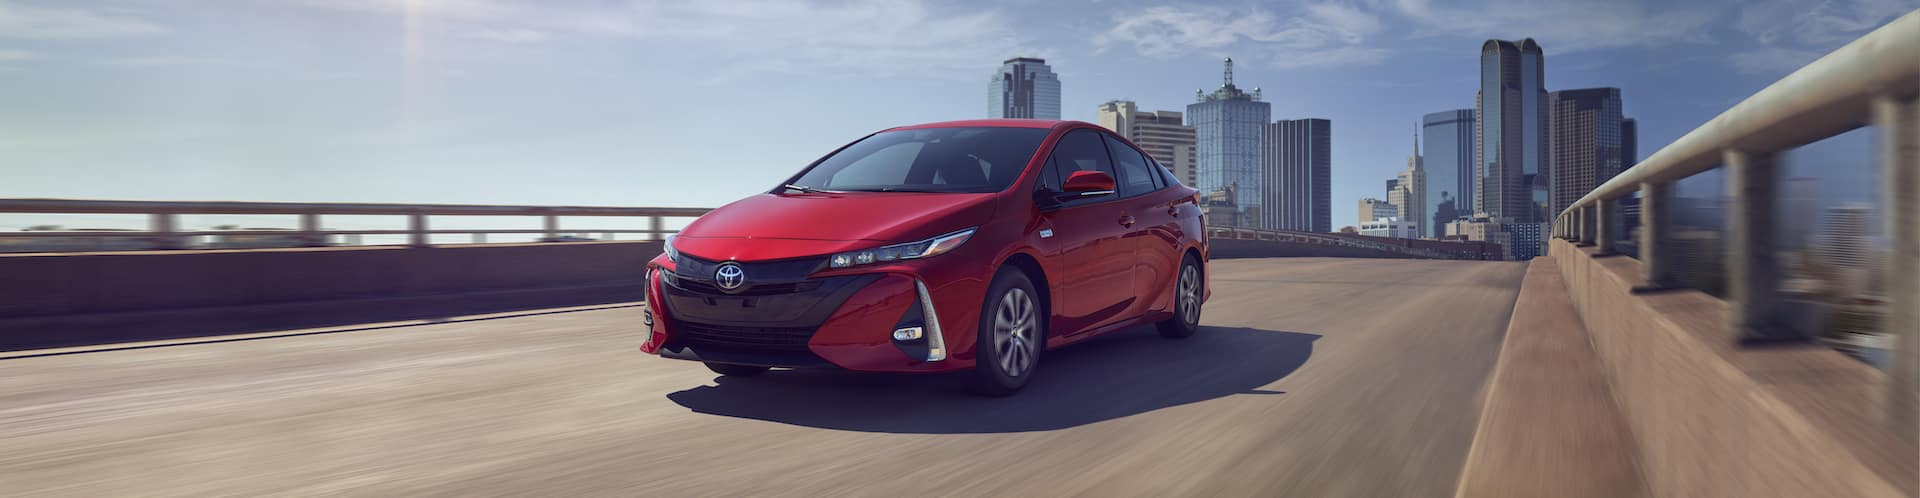 Halterman's Toyota is a Toyota Dealership near Saylorsburg, PA | 2021 Toyota Prius Prime driving away from city